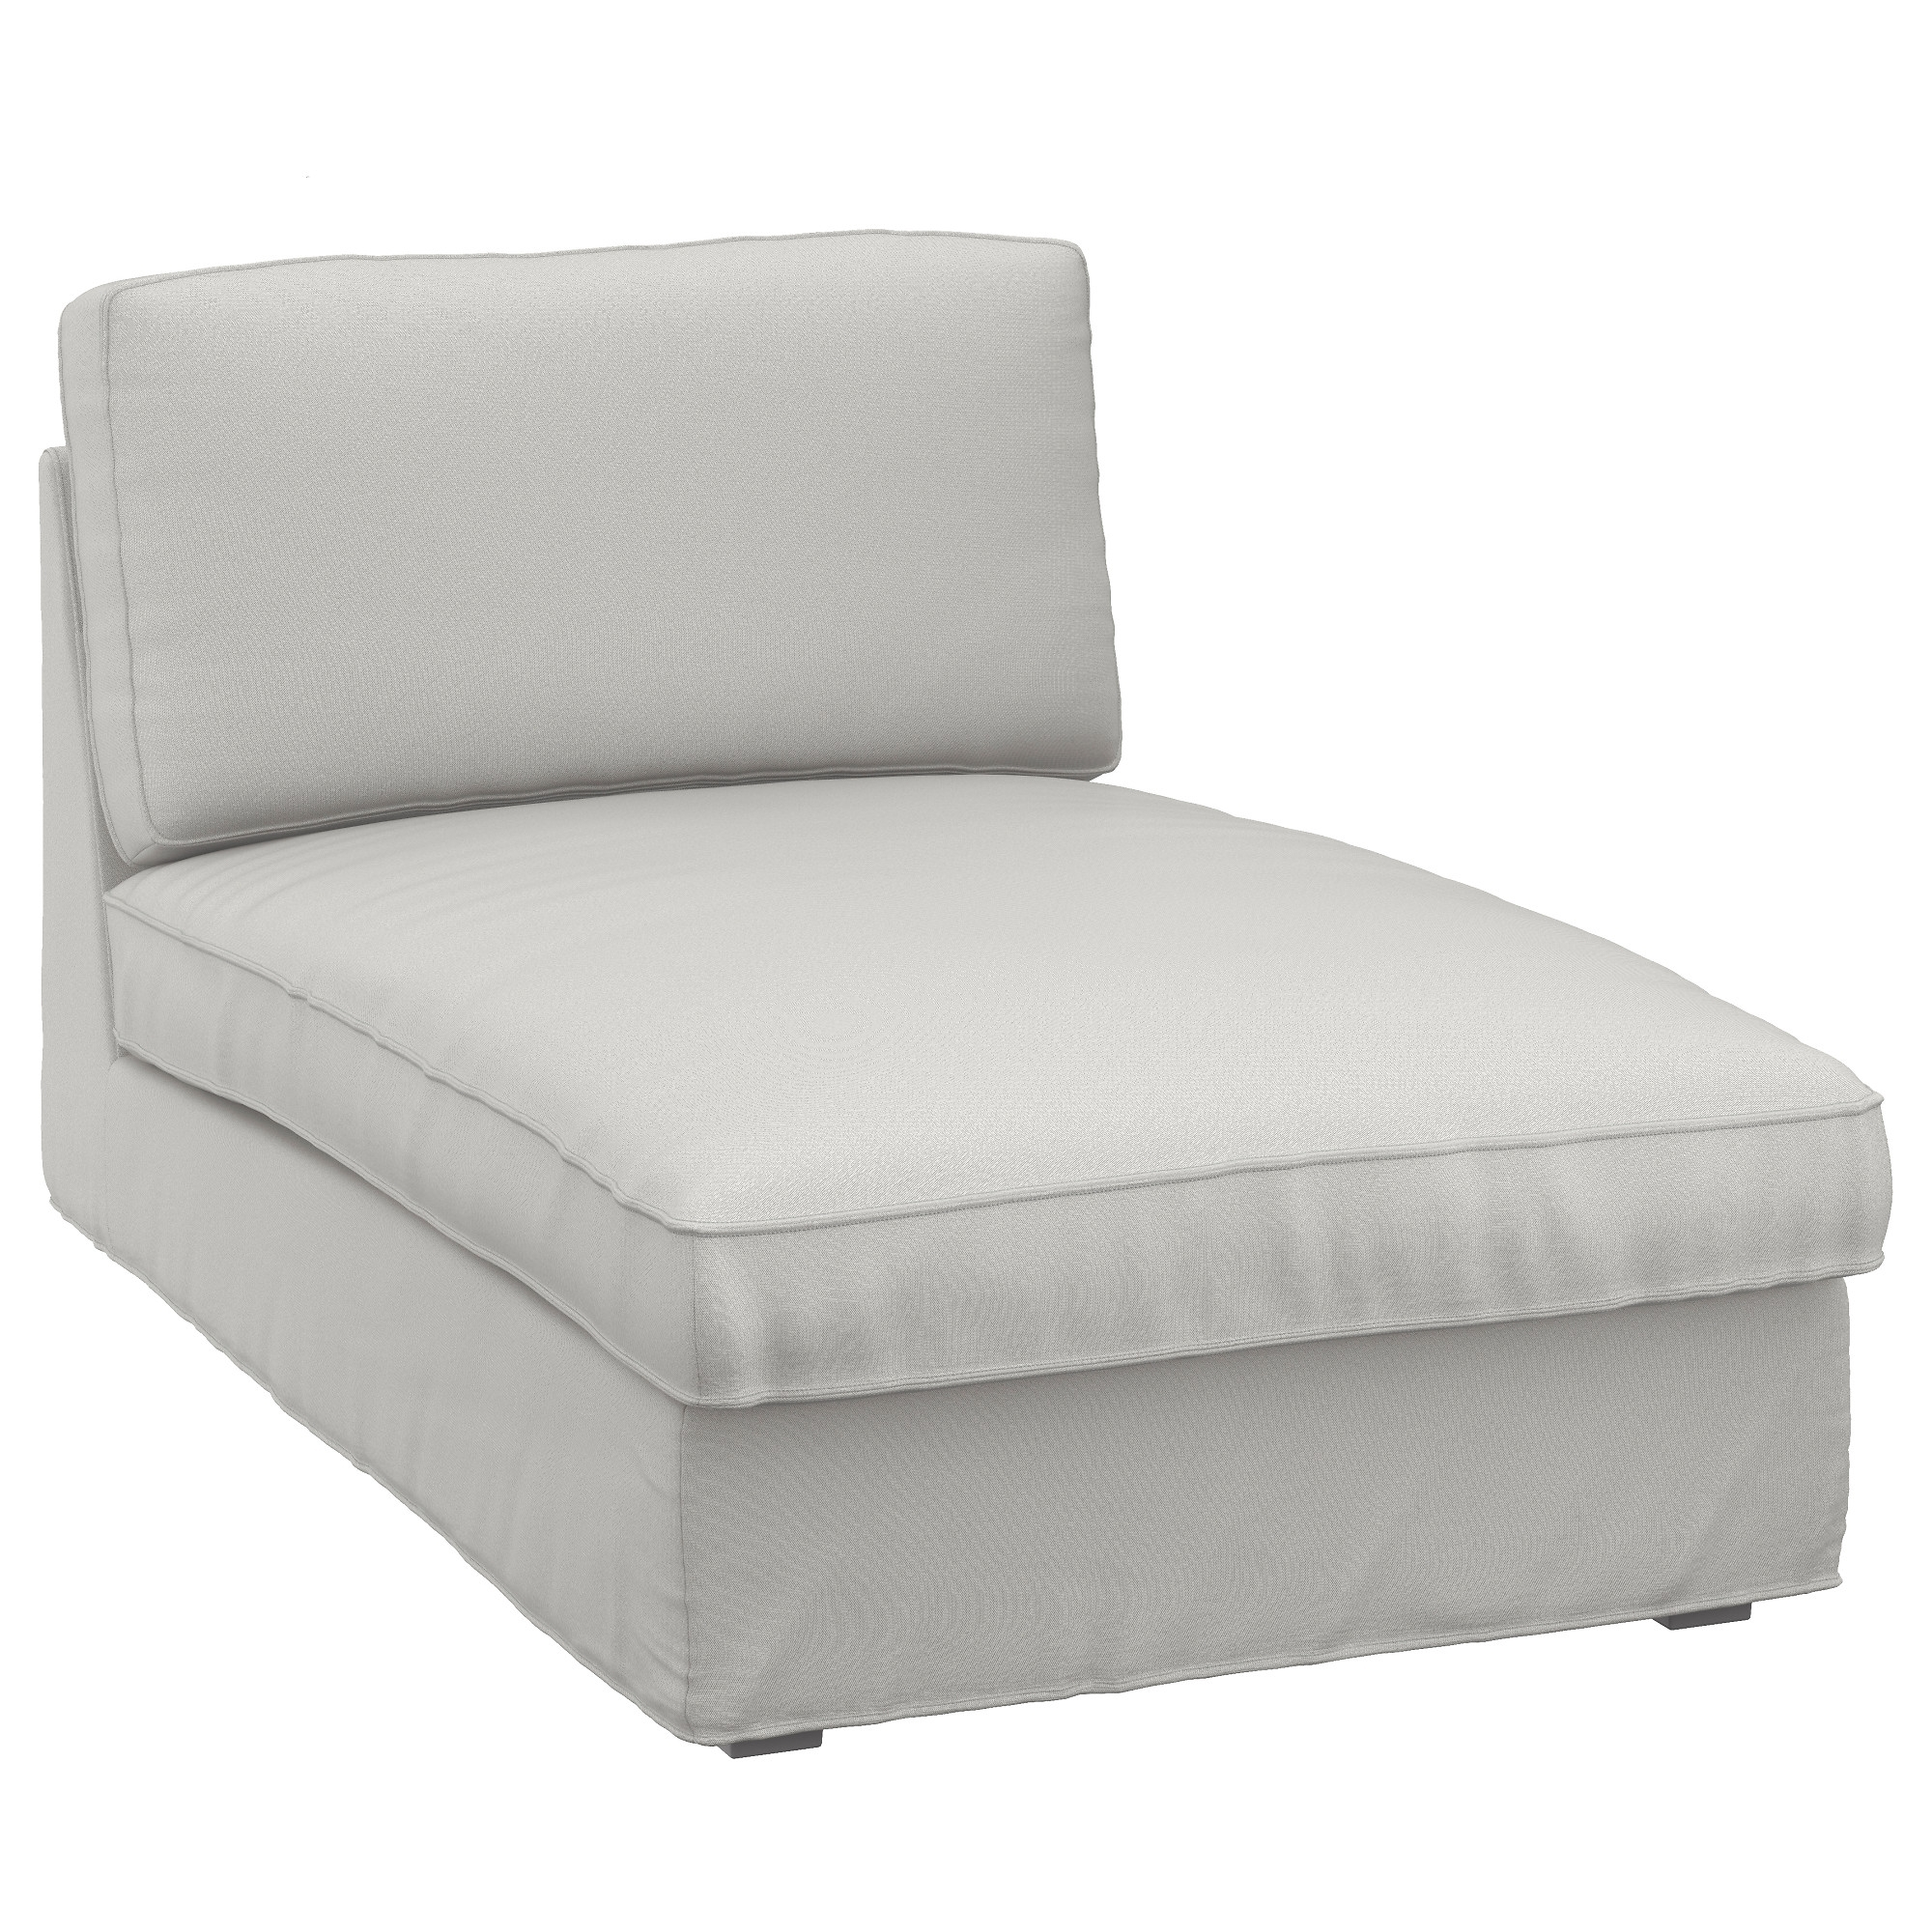 Ikea With Regard To Newest Ikea Chaise Lounge Chairs (Gallery 11 of 15)